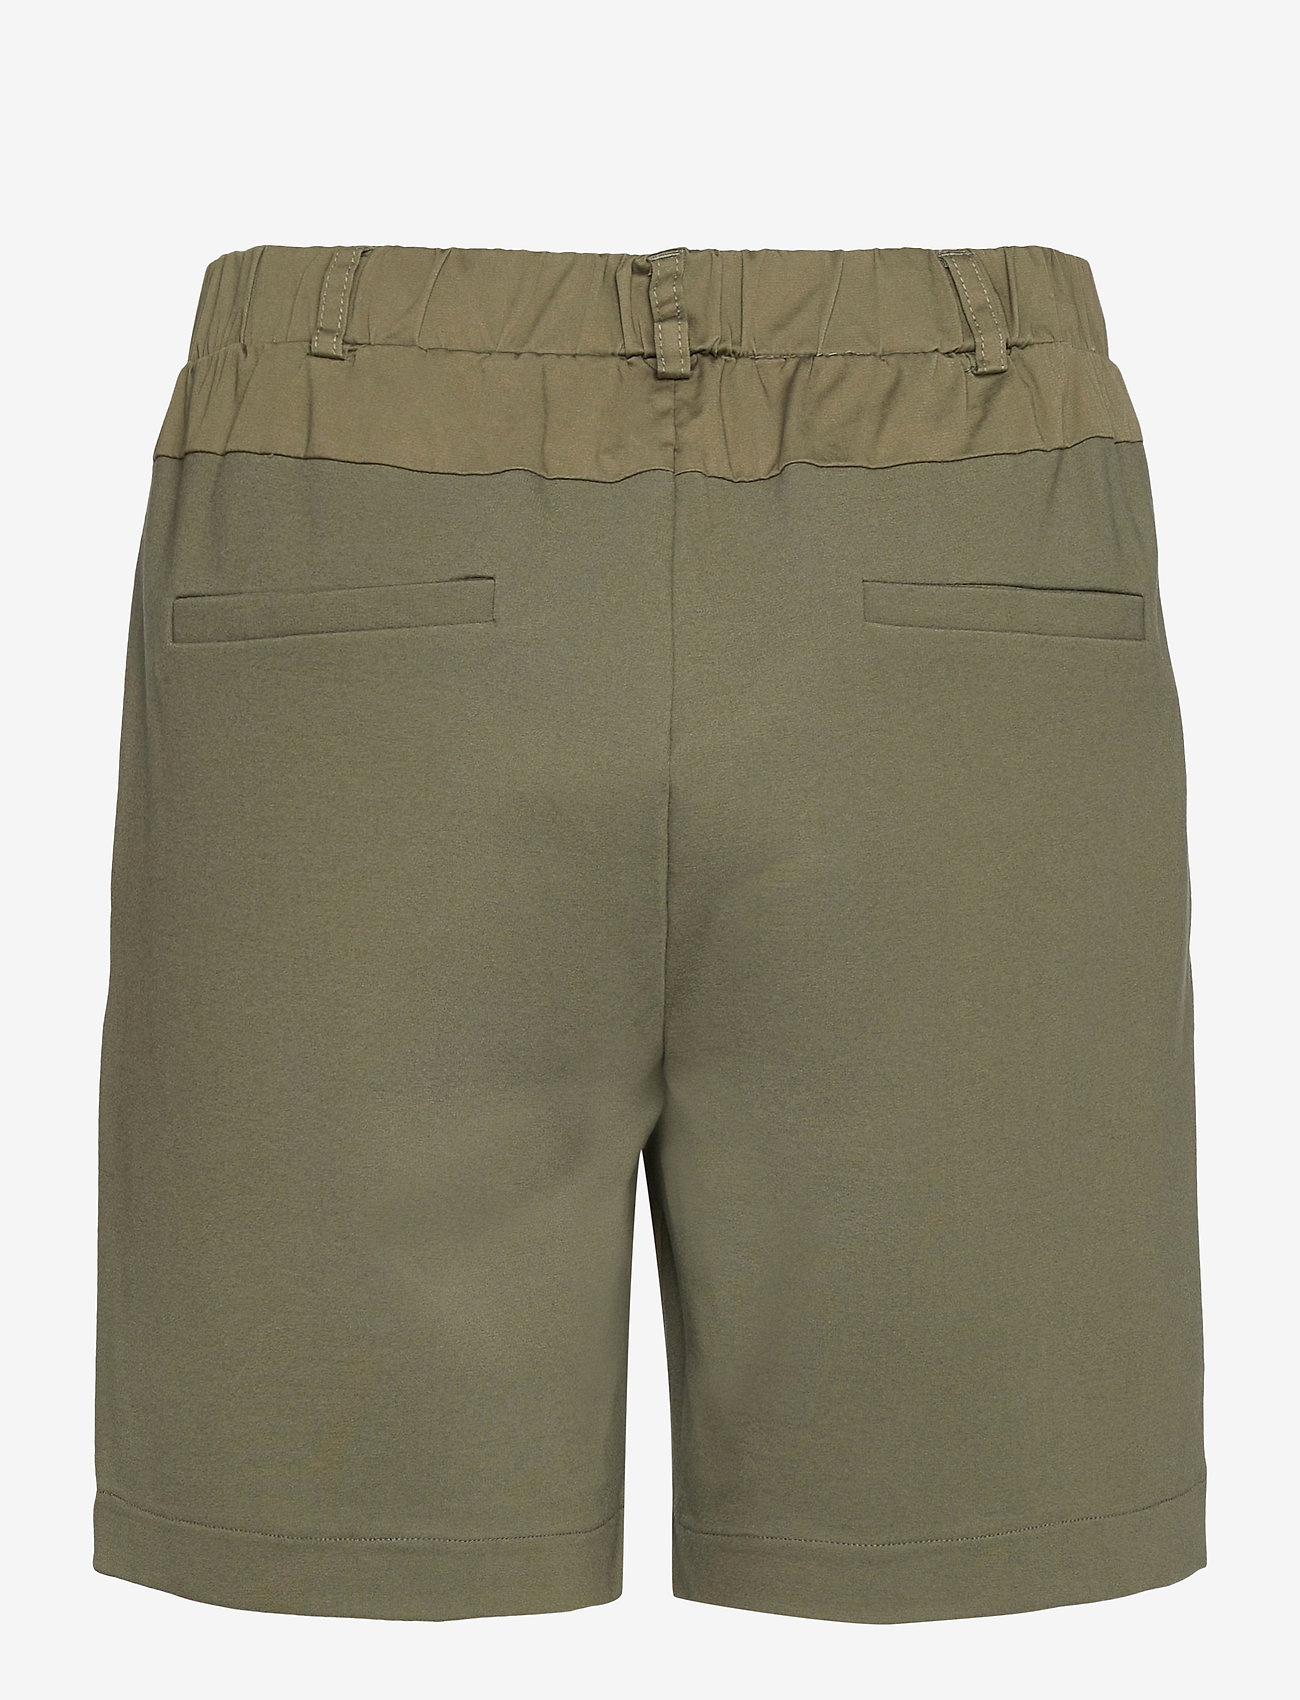 FREE/QUENT - HEGEN-SHO-SAND - chino shorts - dusty olive - 1